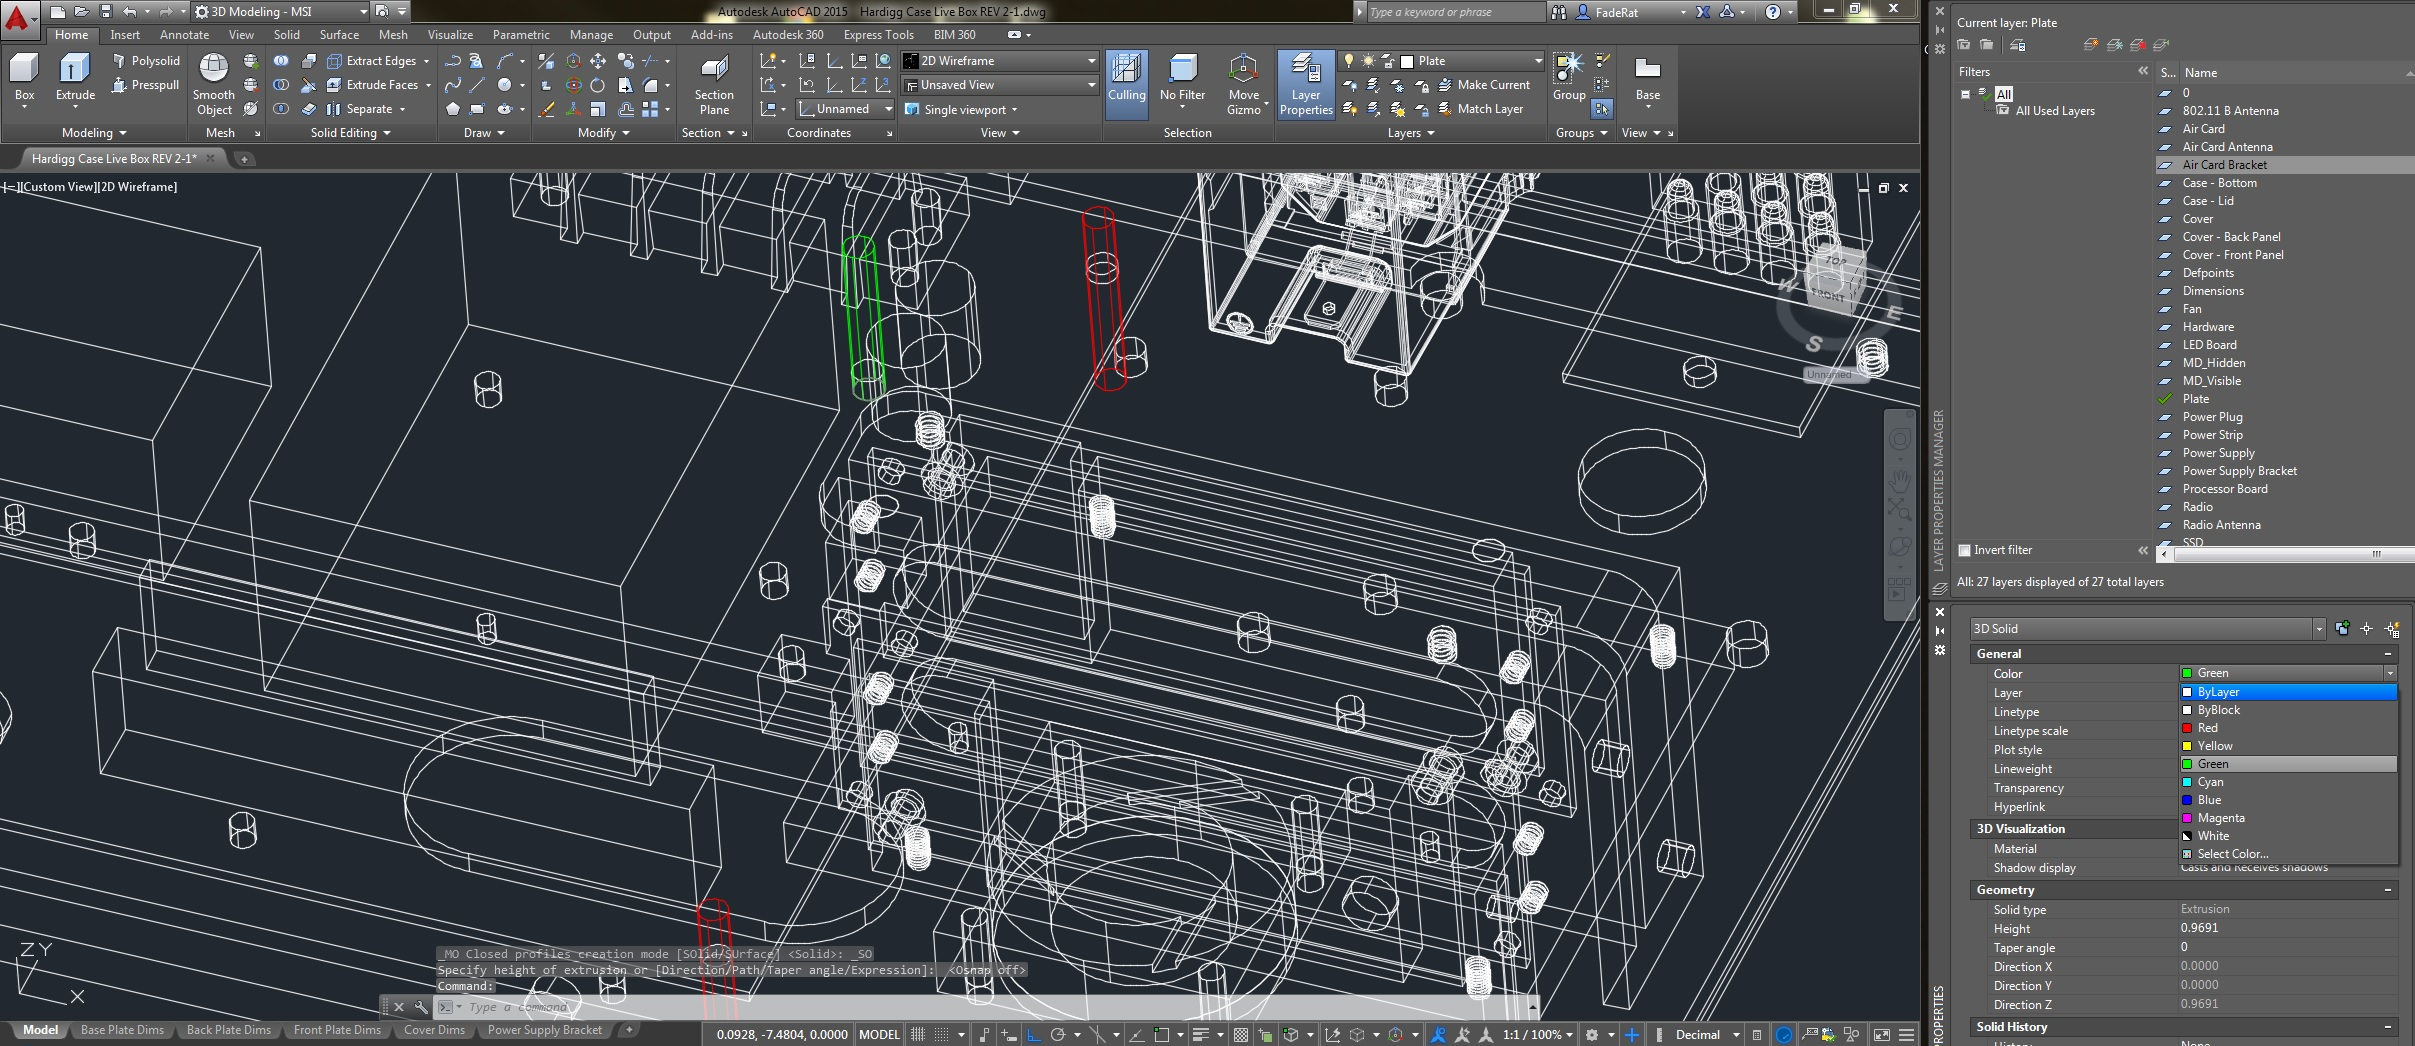 AutoCAD 2015 freezes when changing 3D object color - Autodesk ...